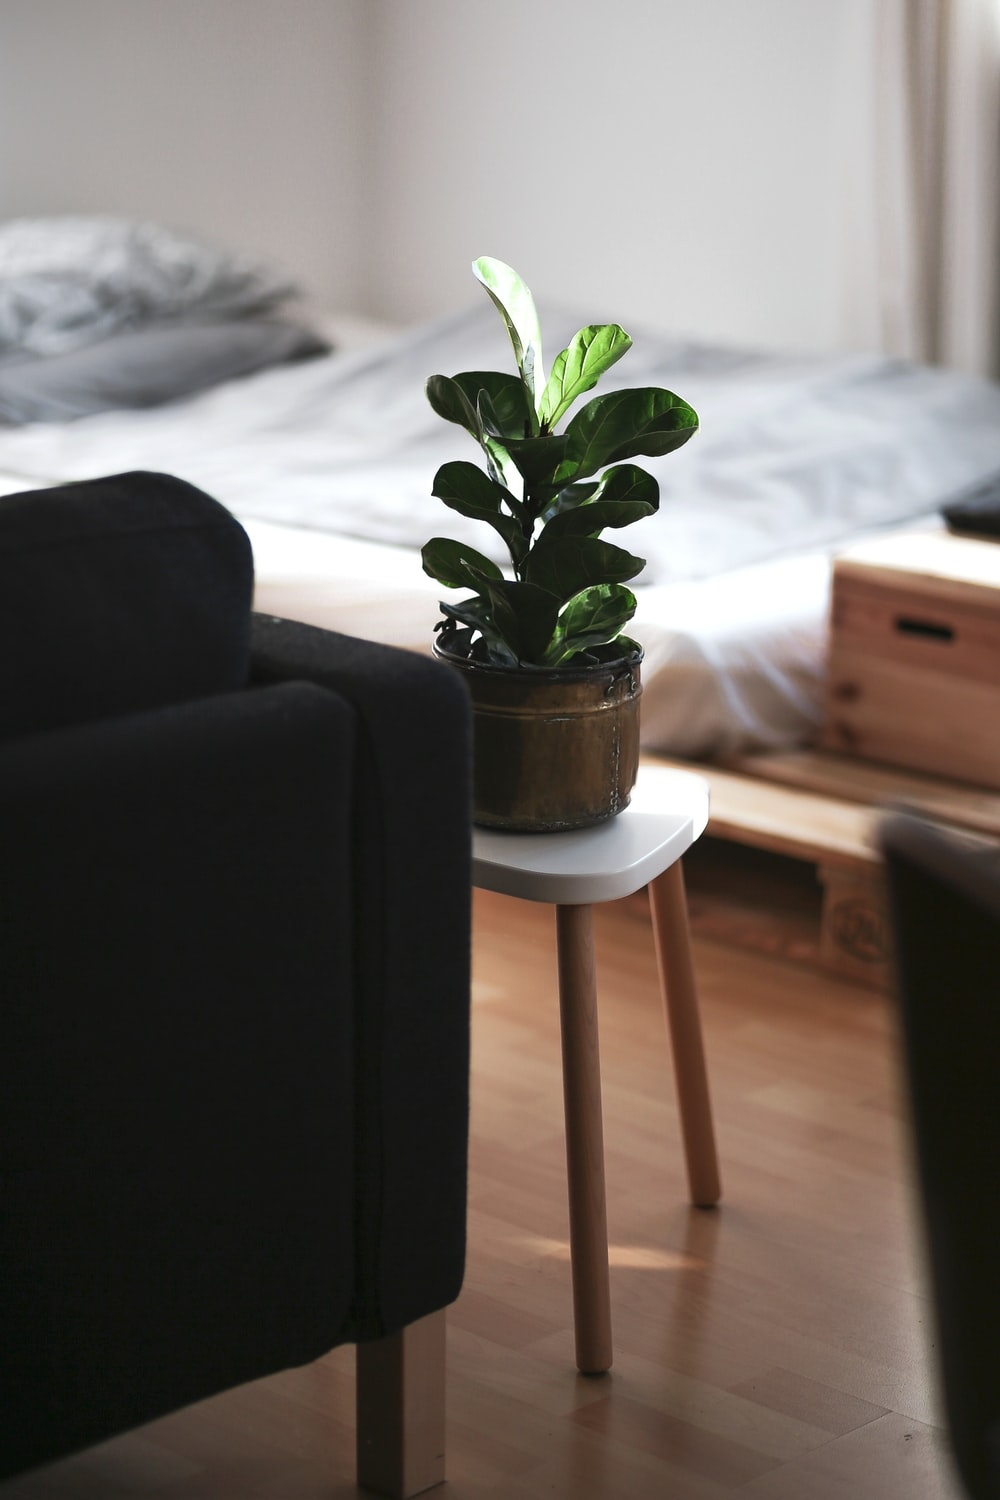 green plant on white pot on brown wooden table